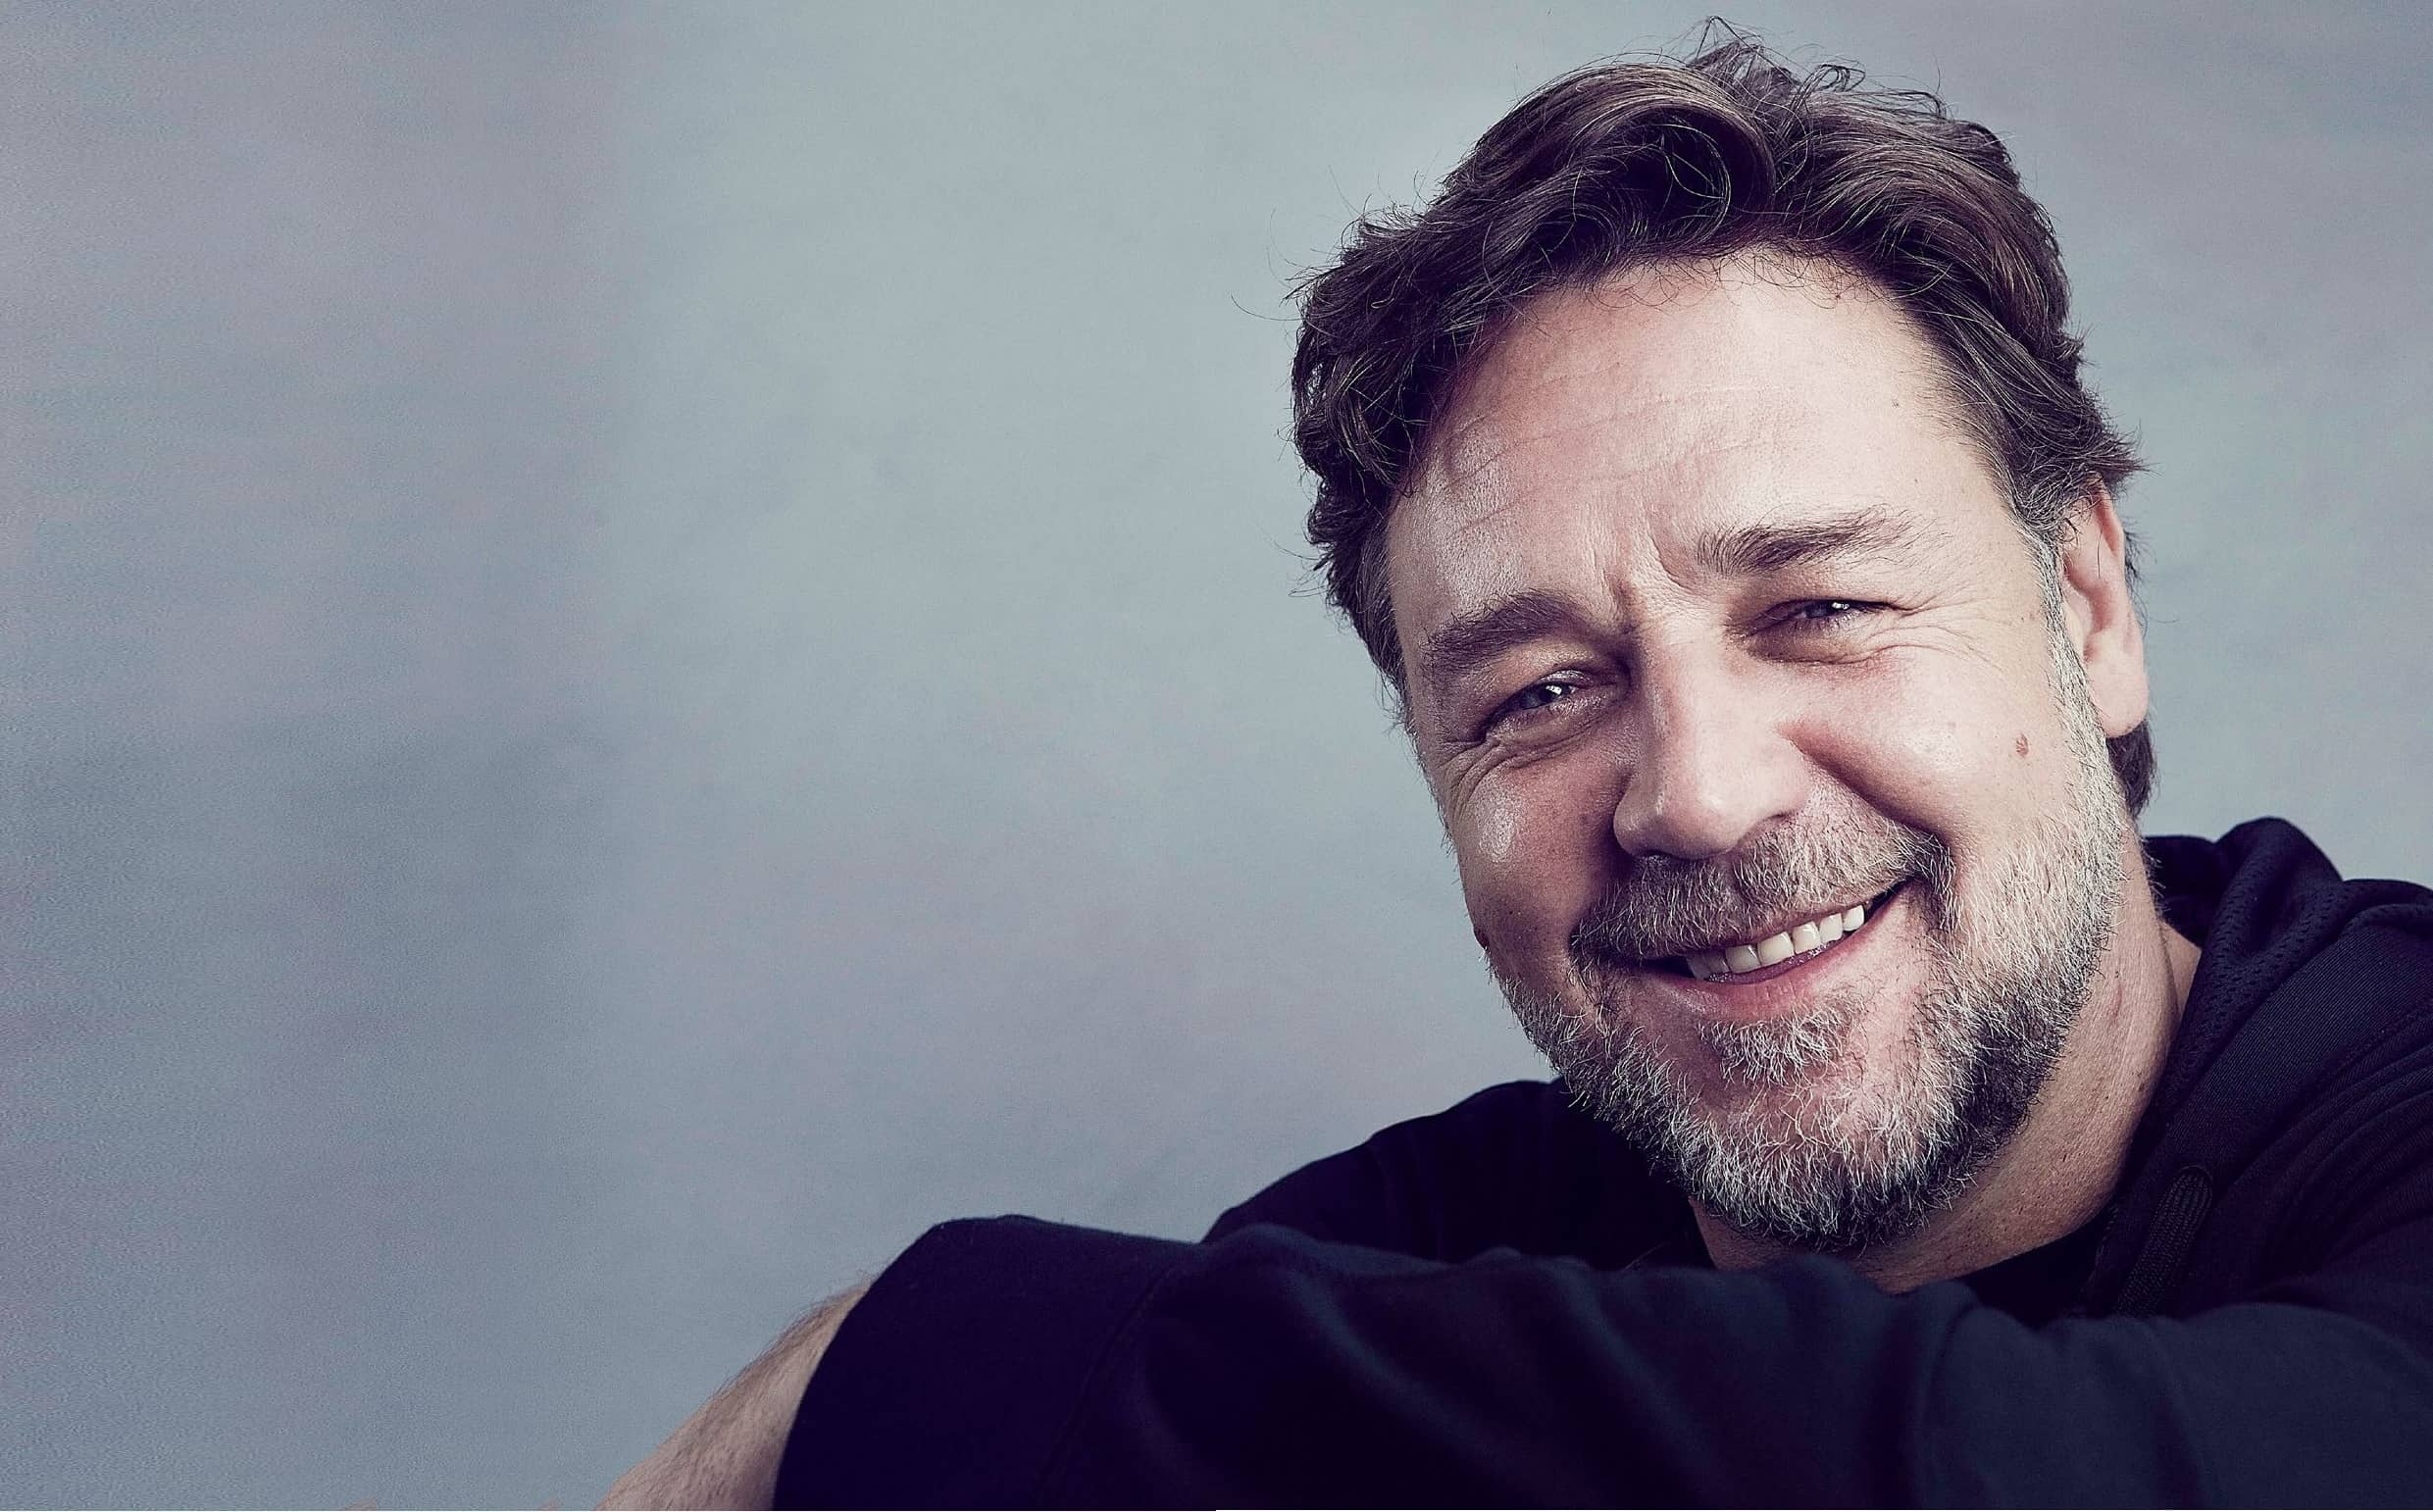 RUSSELL CROWE - THE HIGHS & LOWS OF FAME